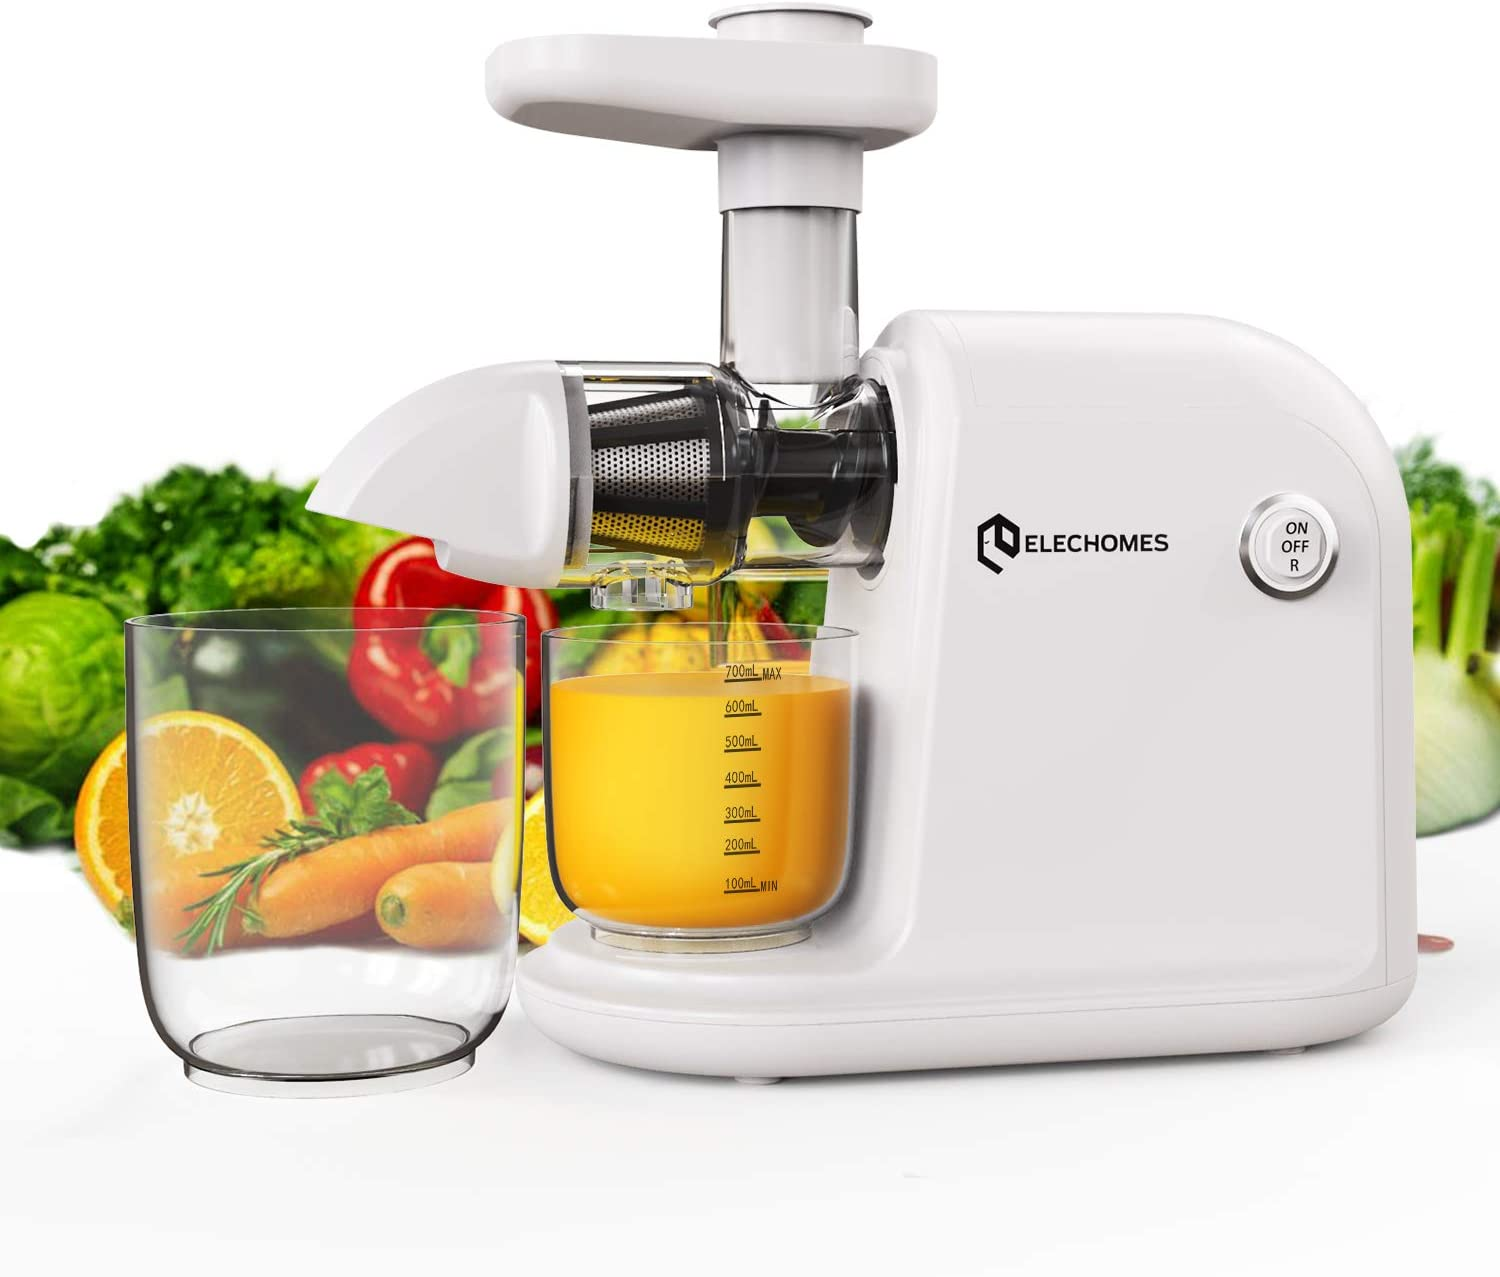 Juicer Machines, Elechomes 80RPM Slow Masticating Juicer, 150W Quiet Motor Cold Press Juicer with Reverse Function, Efficient High Yield Slow Juicer Extractor for Vegetables and Fruits, Easy to Clean